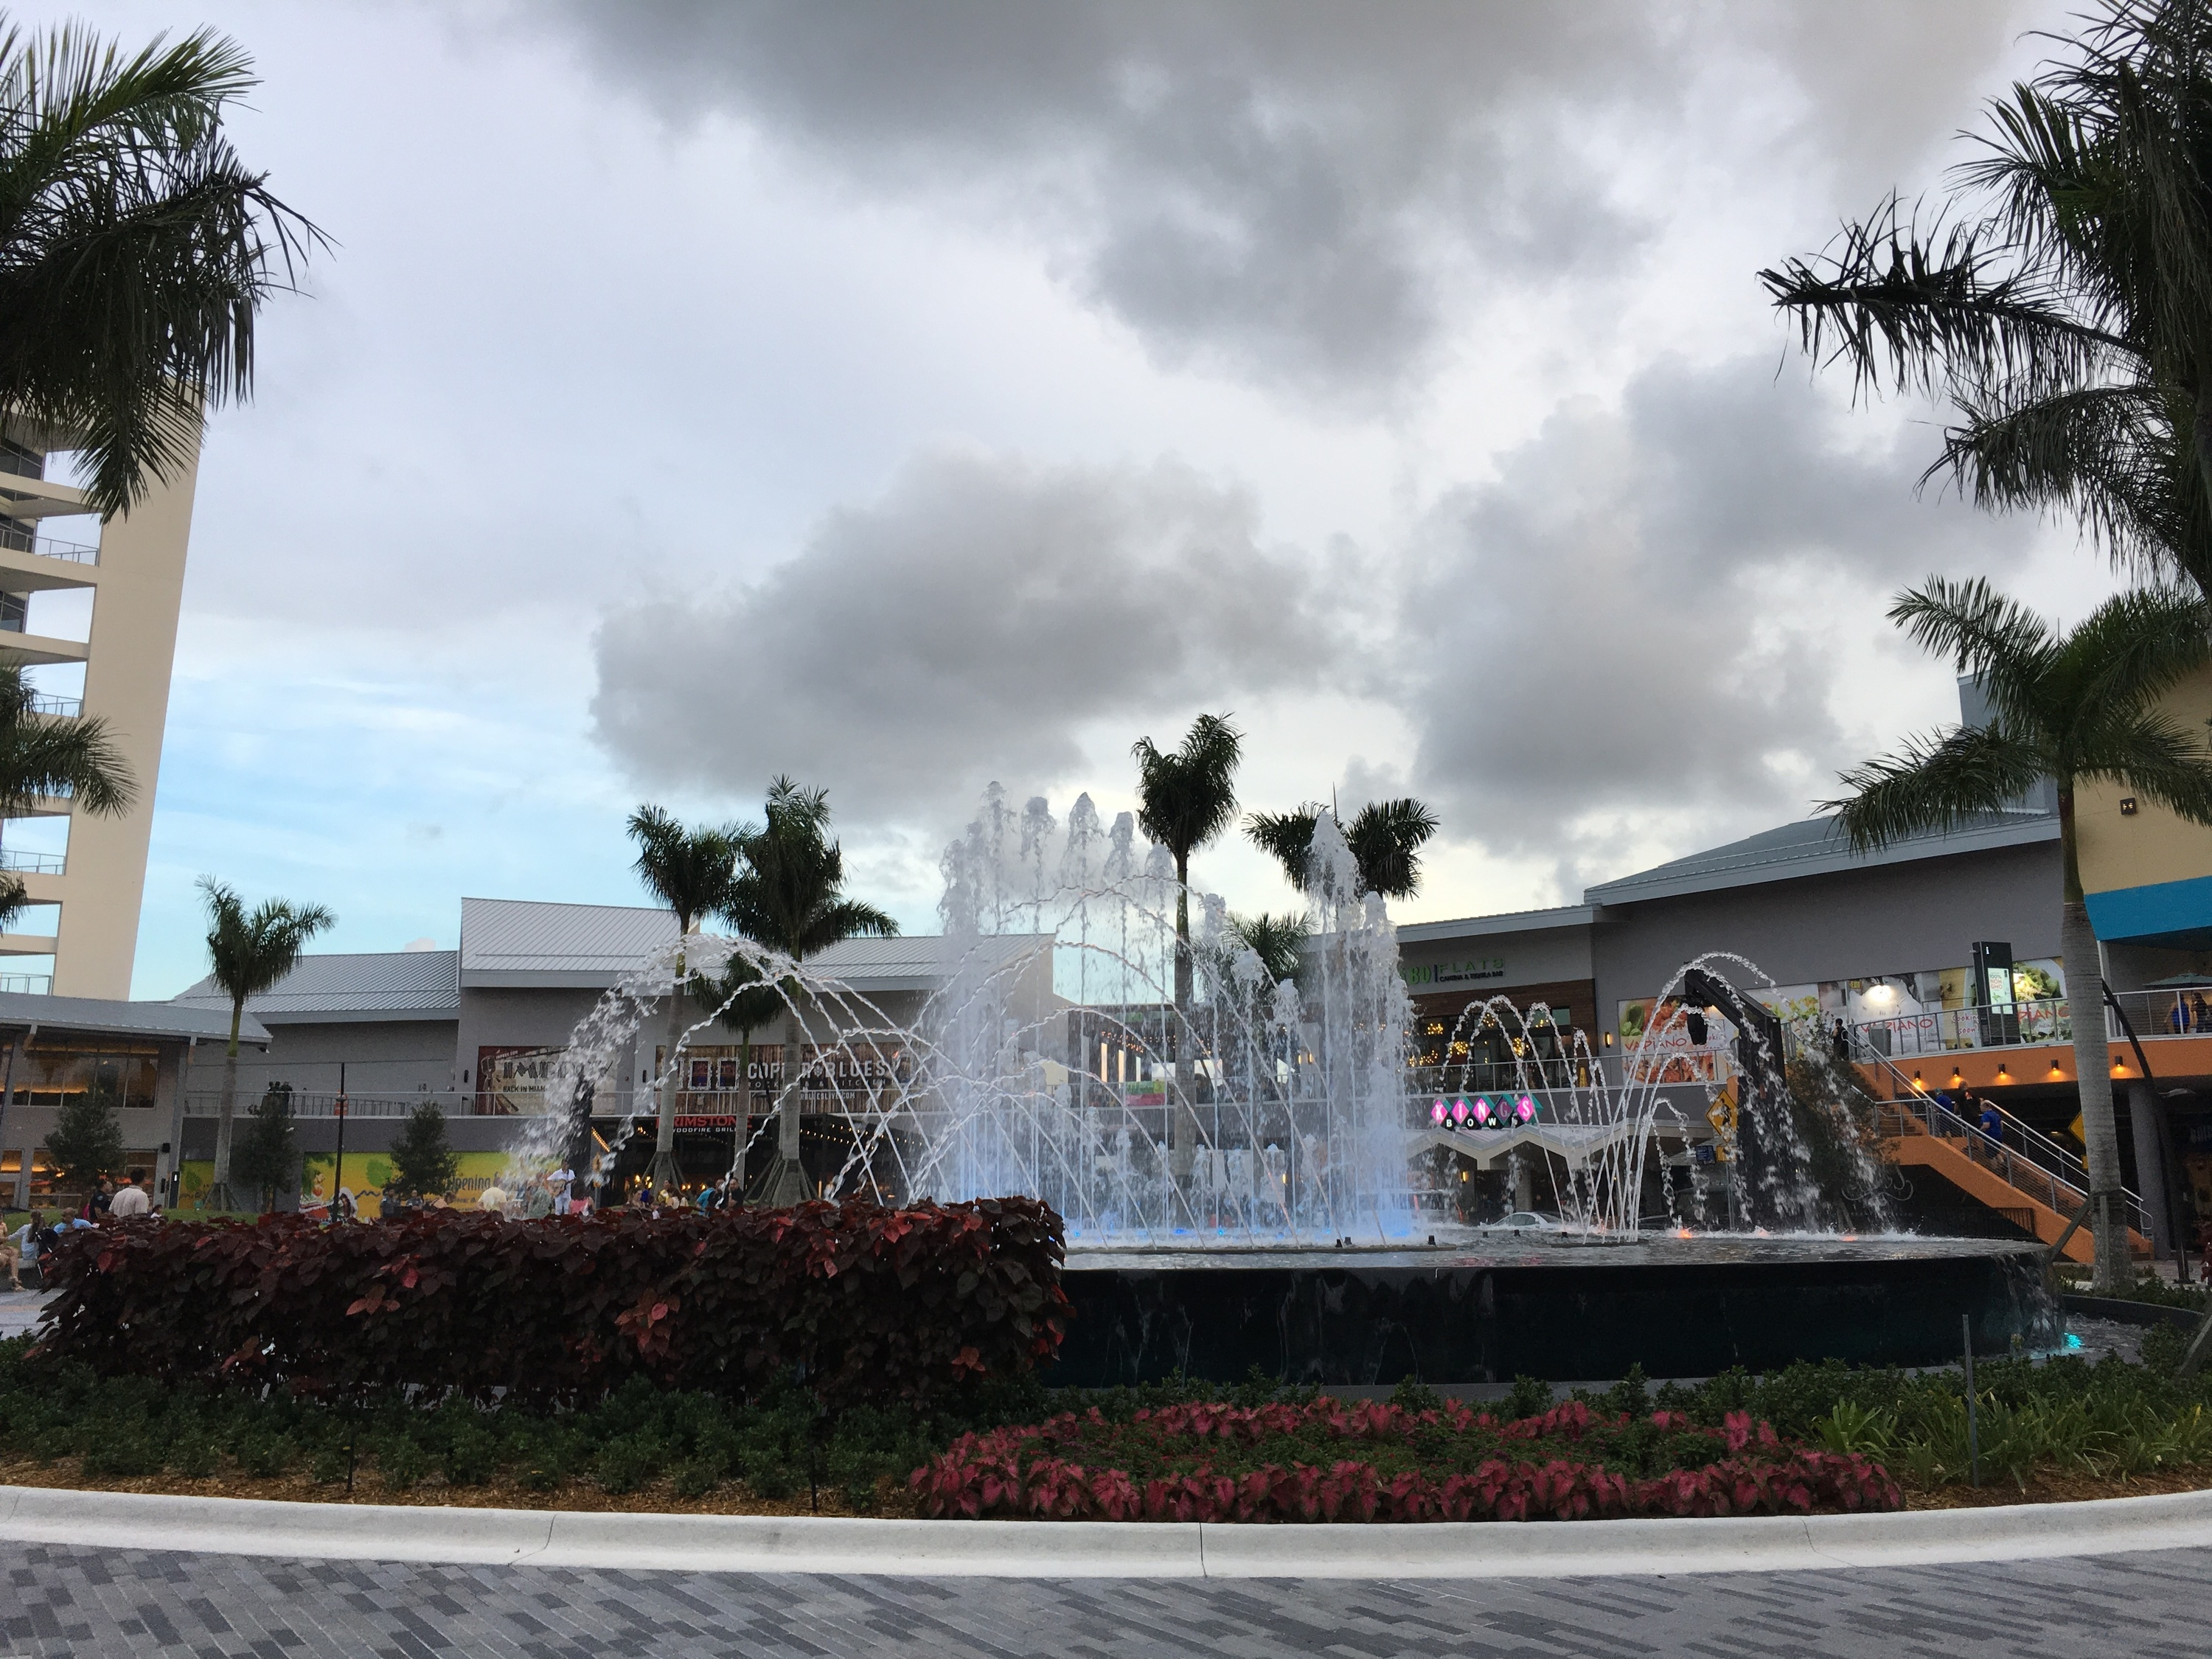 Tree lighting ceremony at CityPlace Doral & Where to see Christmas lights in Miami and Fort Lauderdale azcodes.com